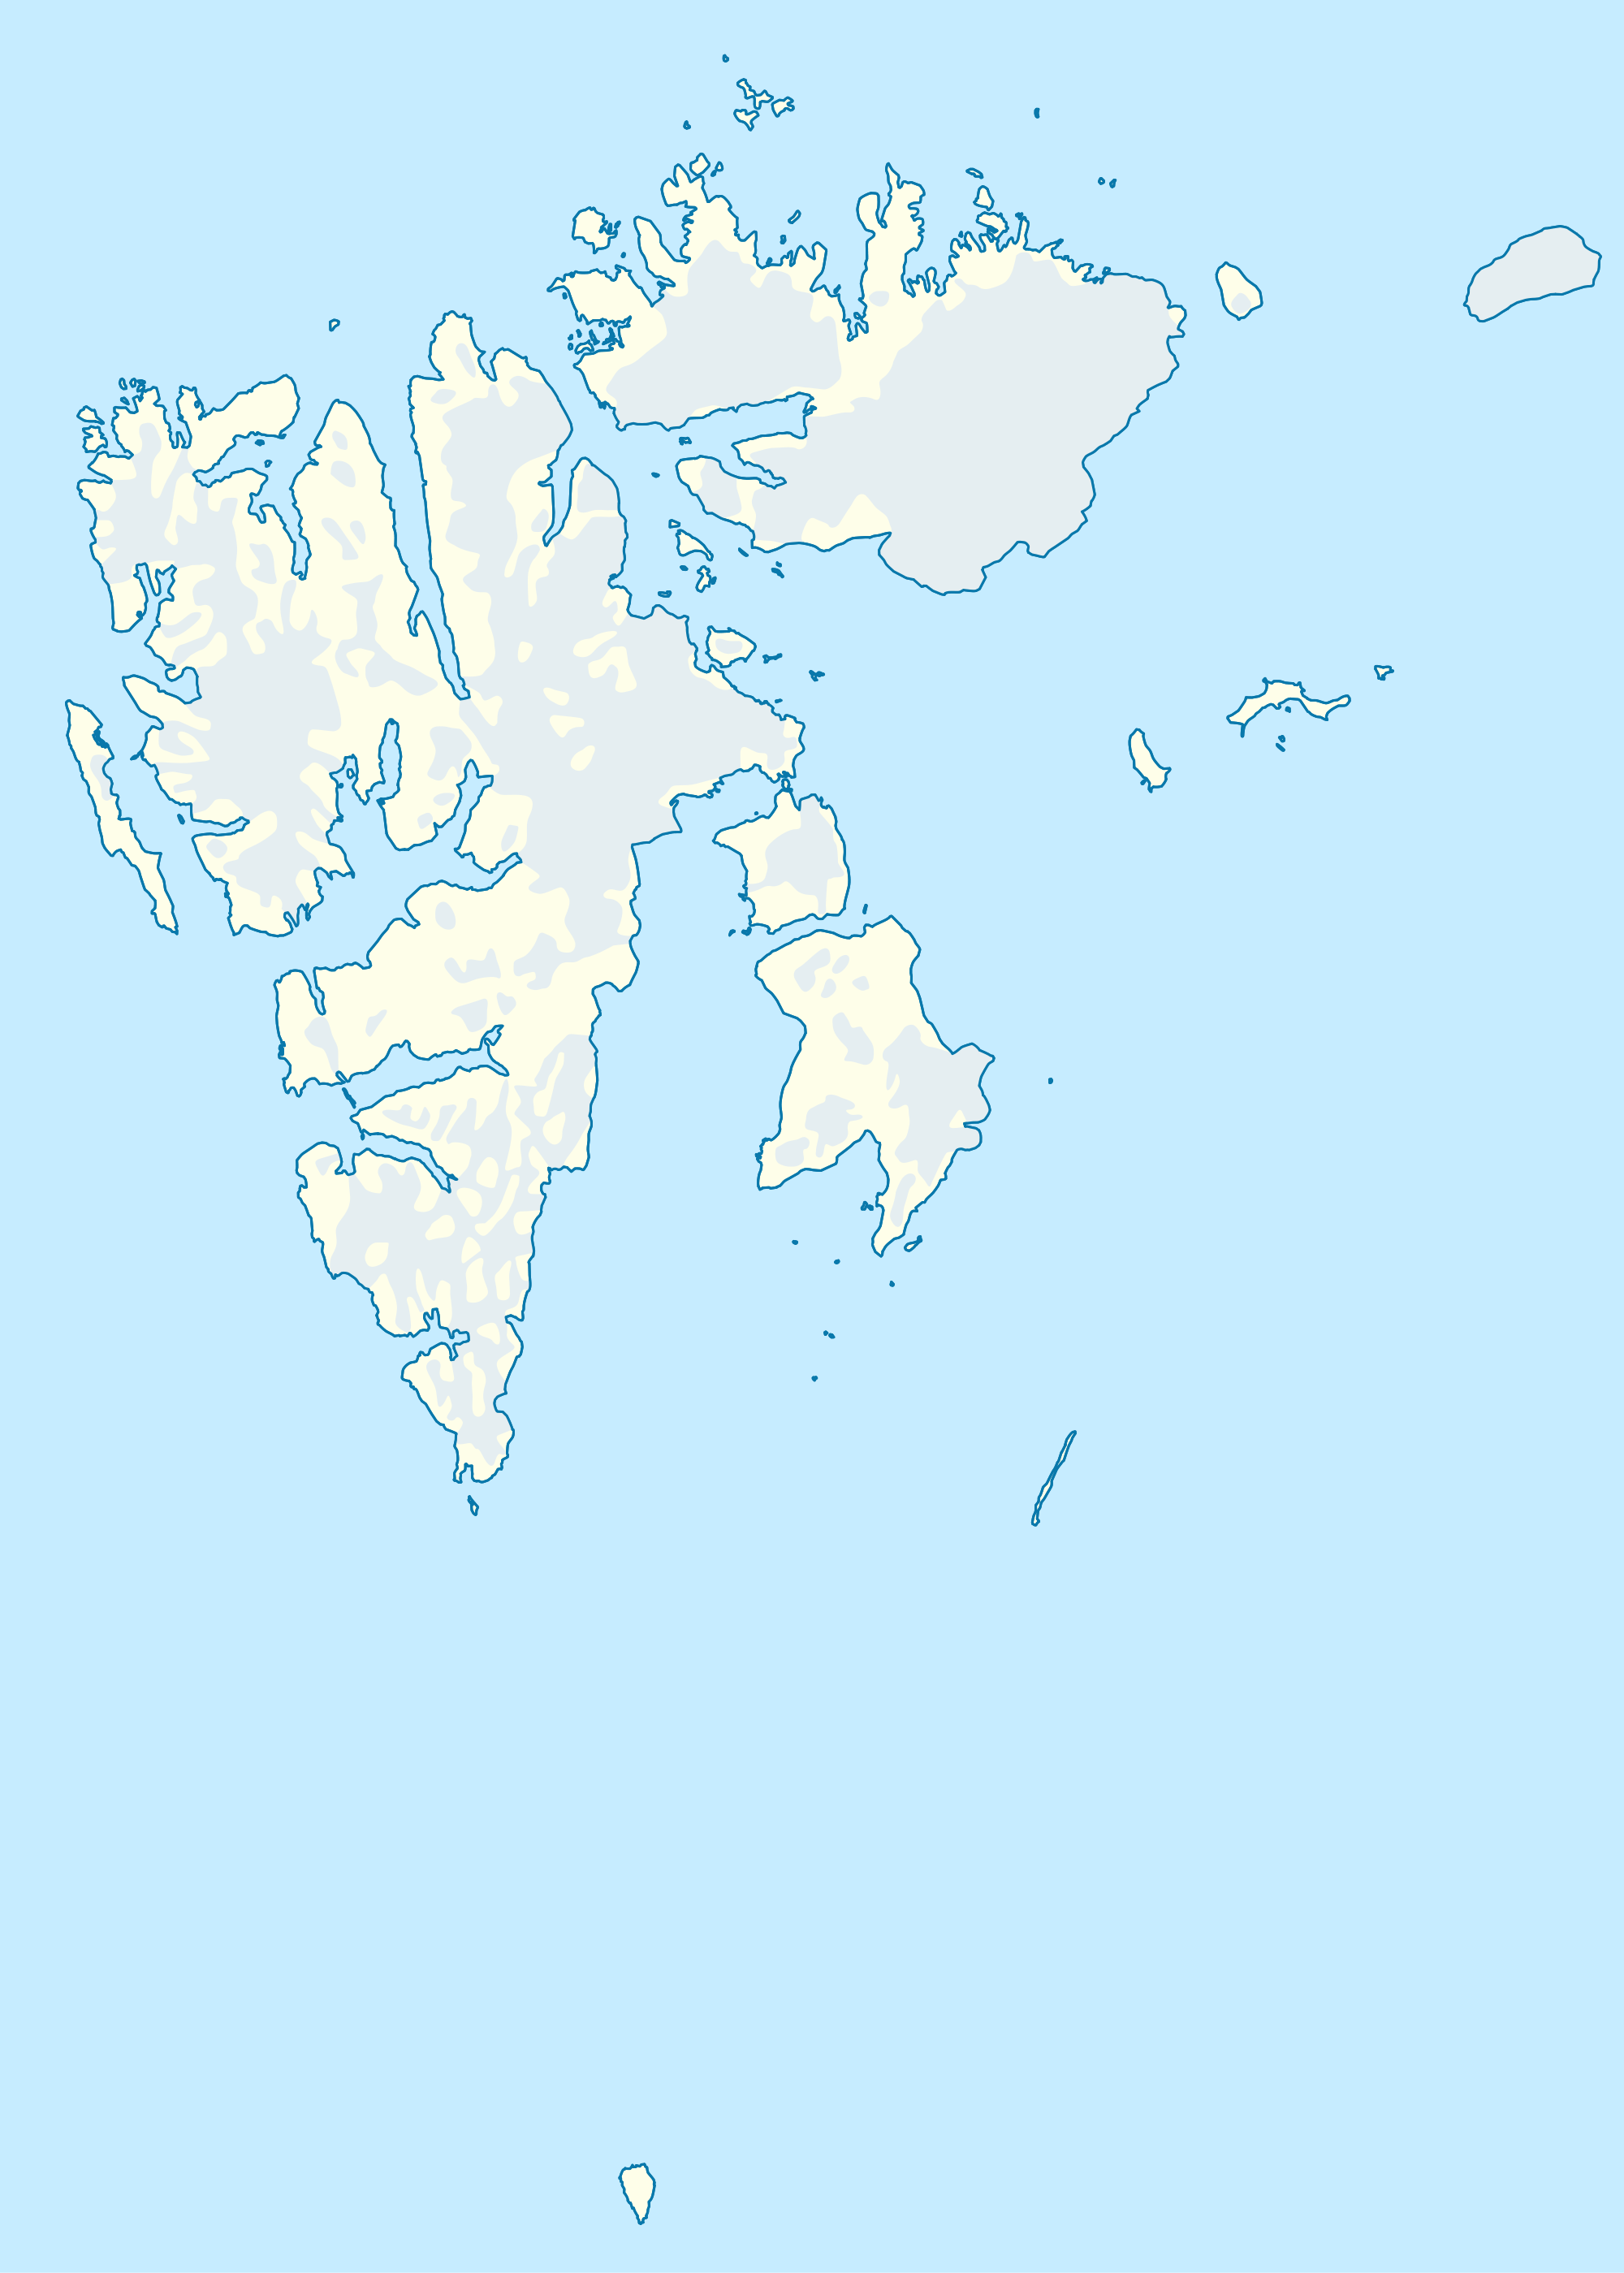 Norway Svalbard Location Map